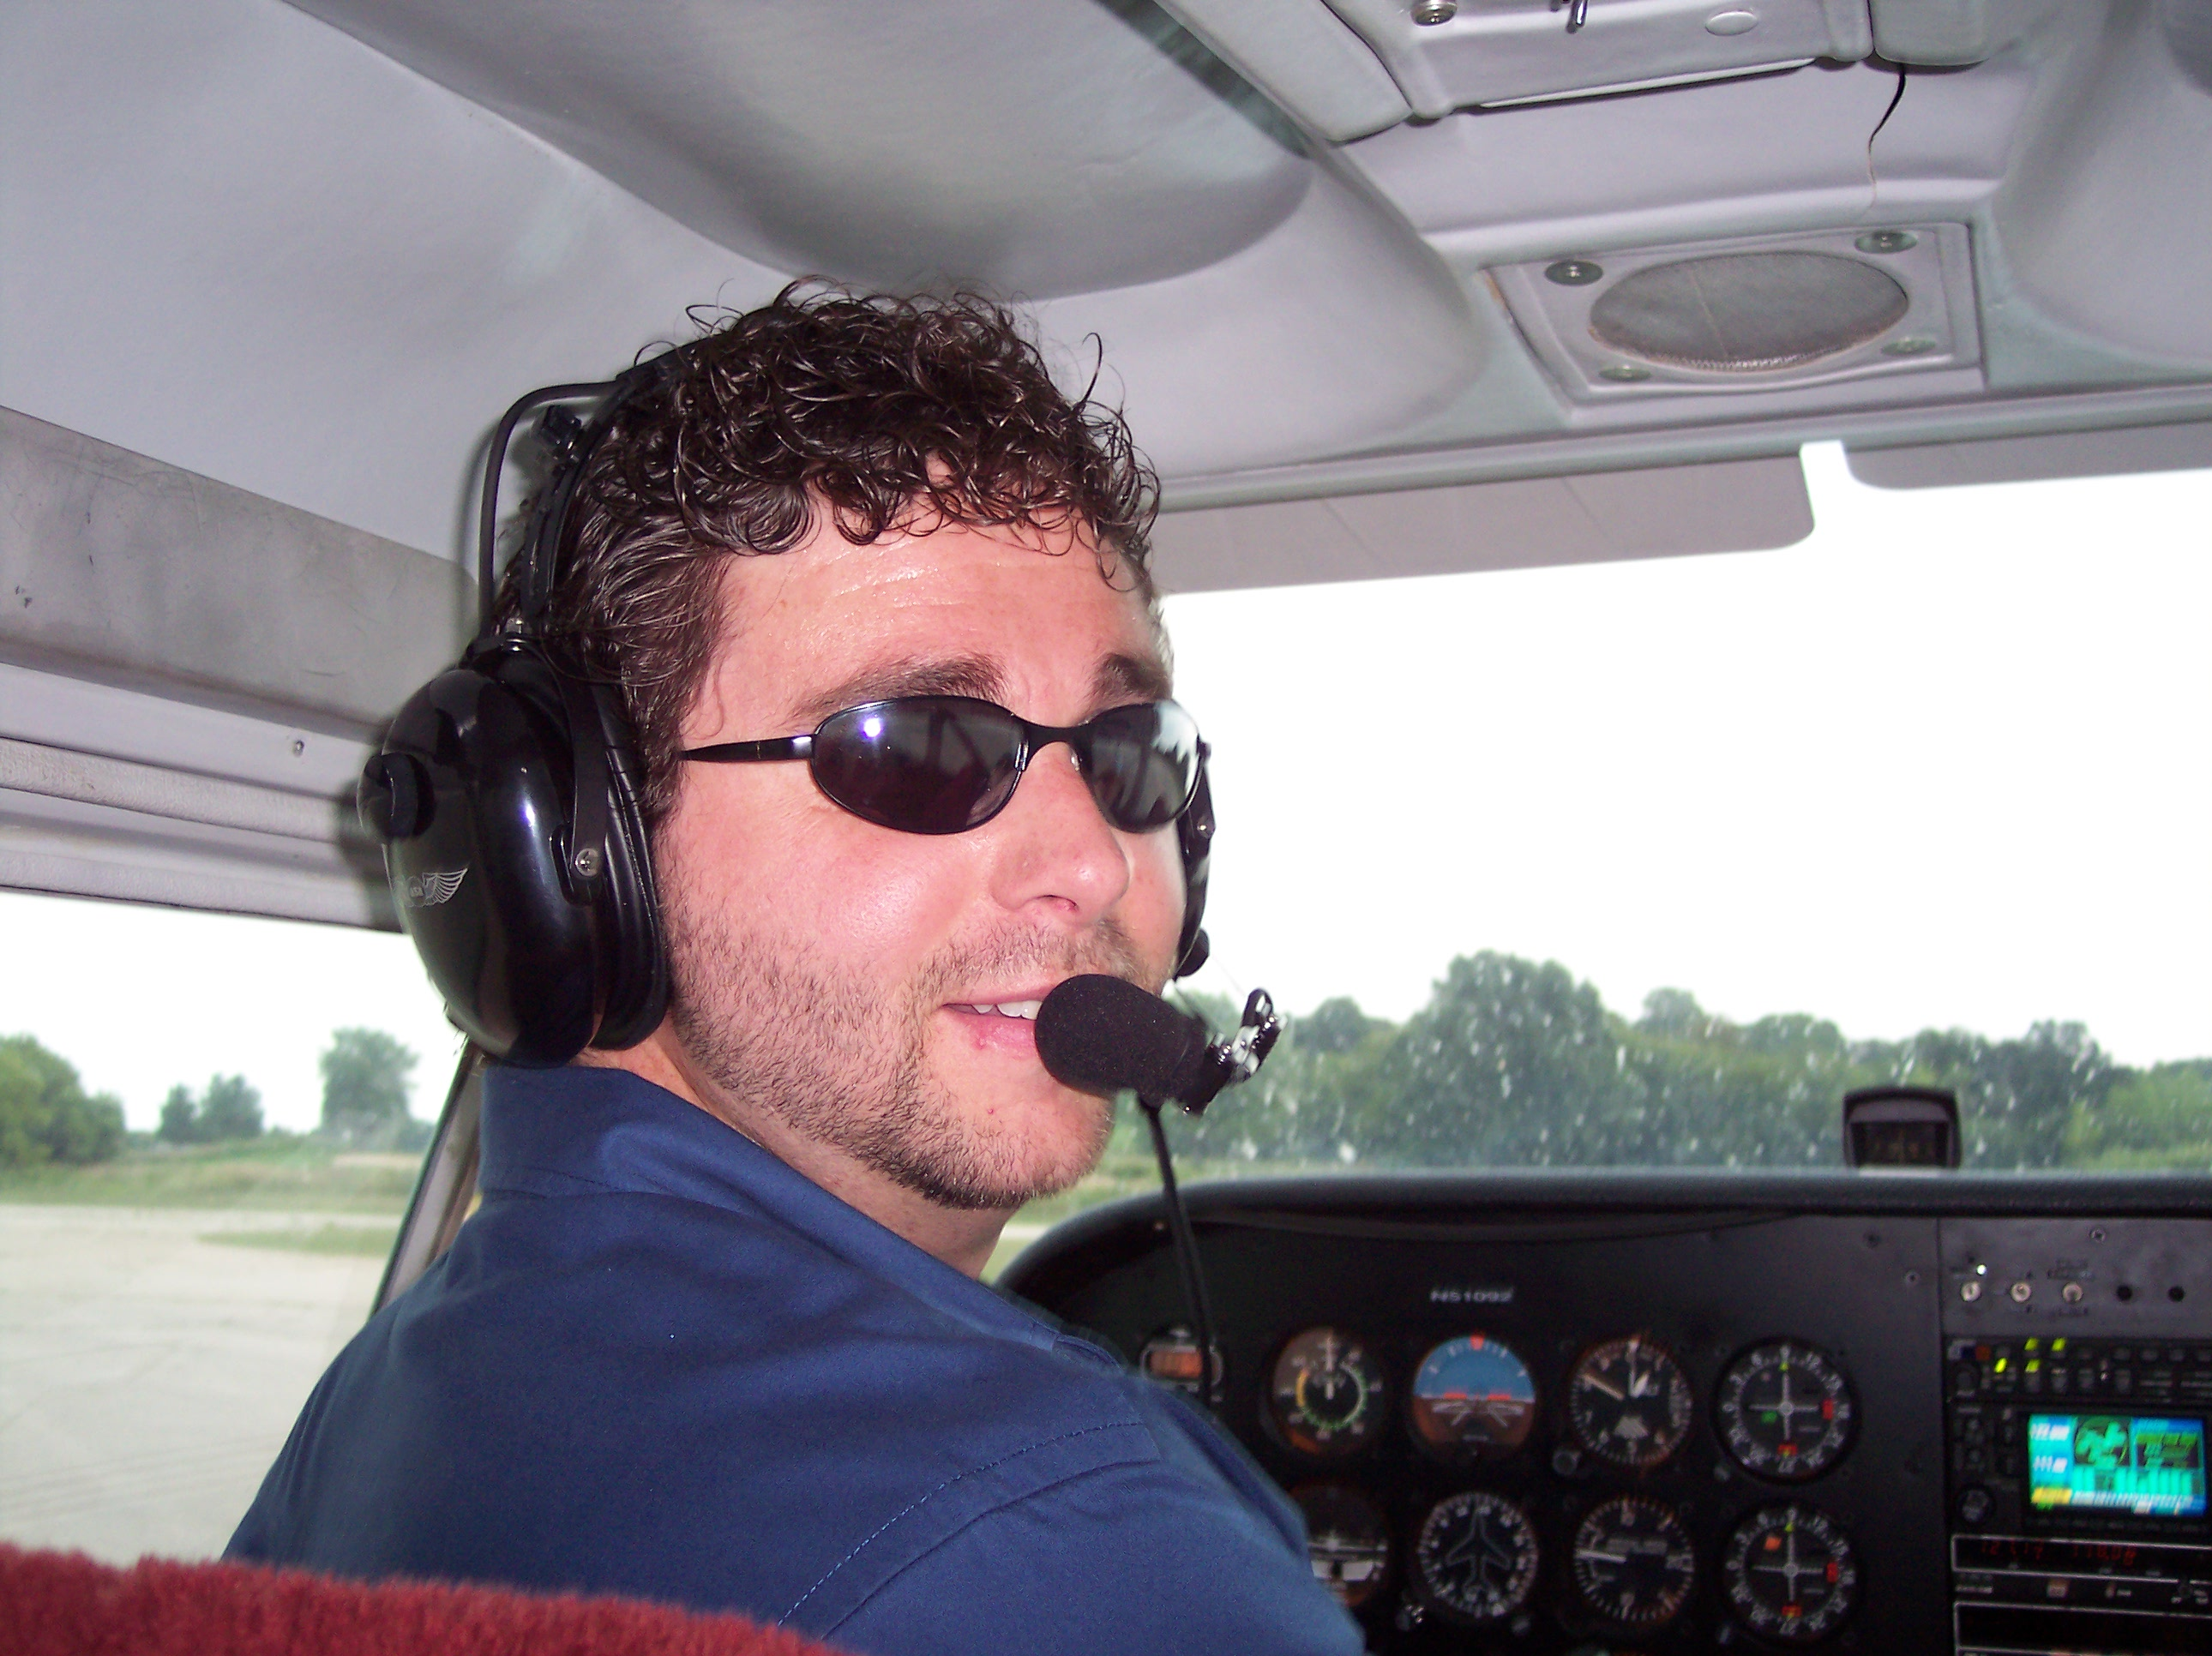 Pilot in command